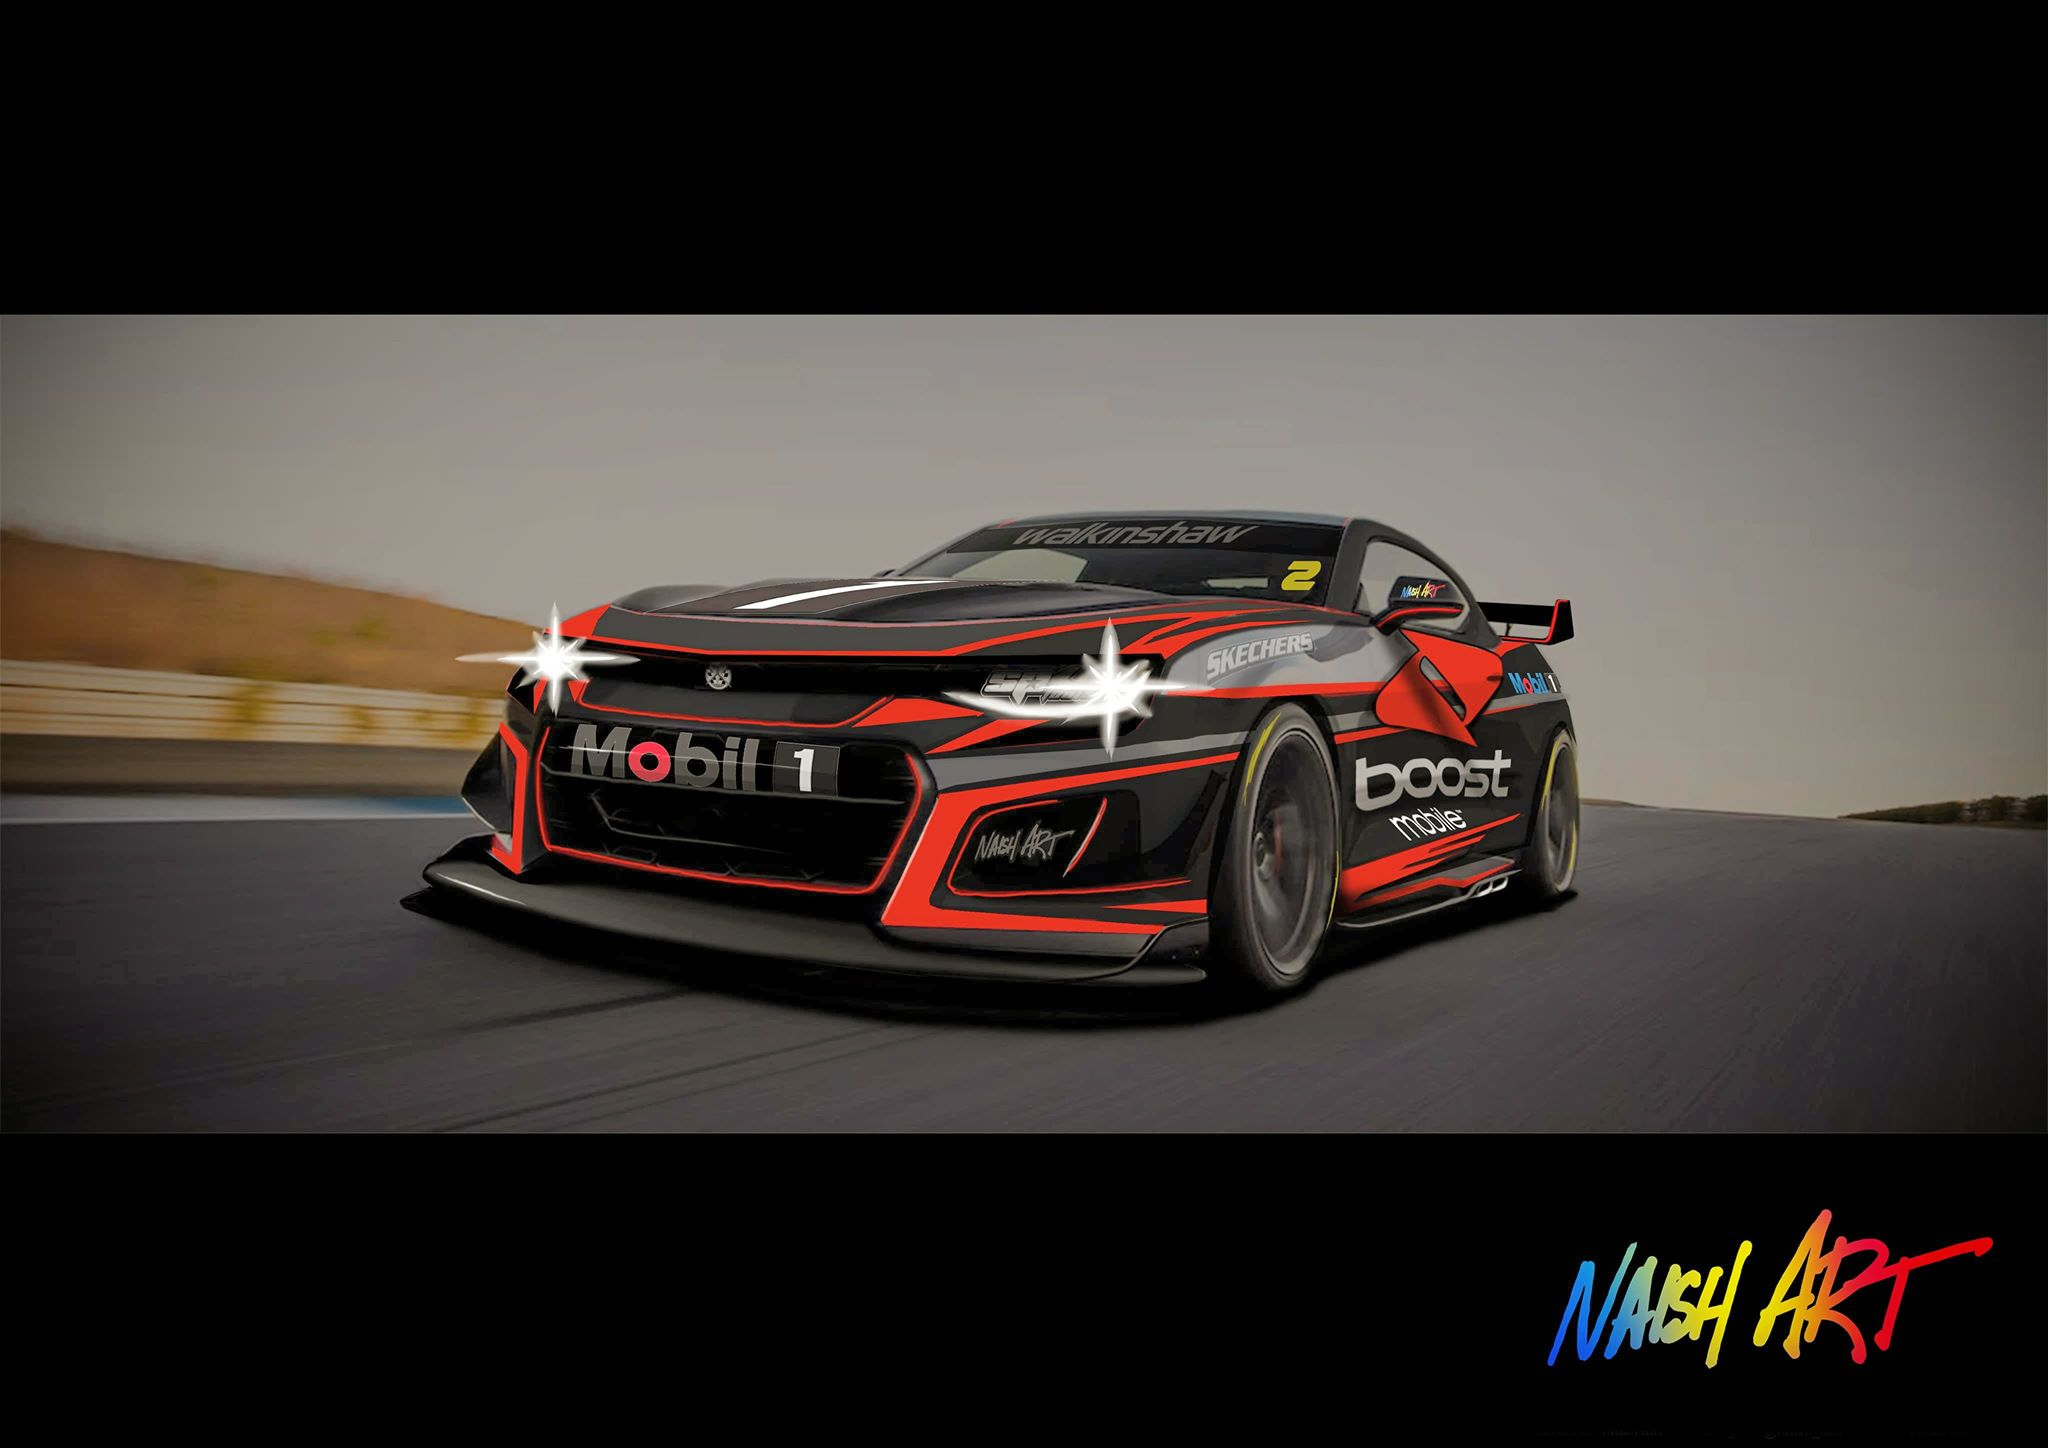 Track Ready Camaro Rendering Looks Pumped For Supercars